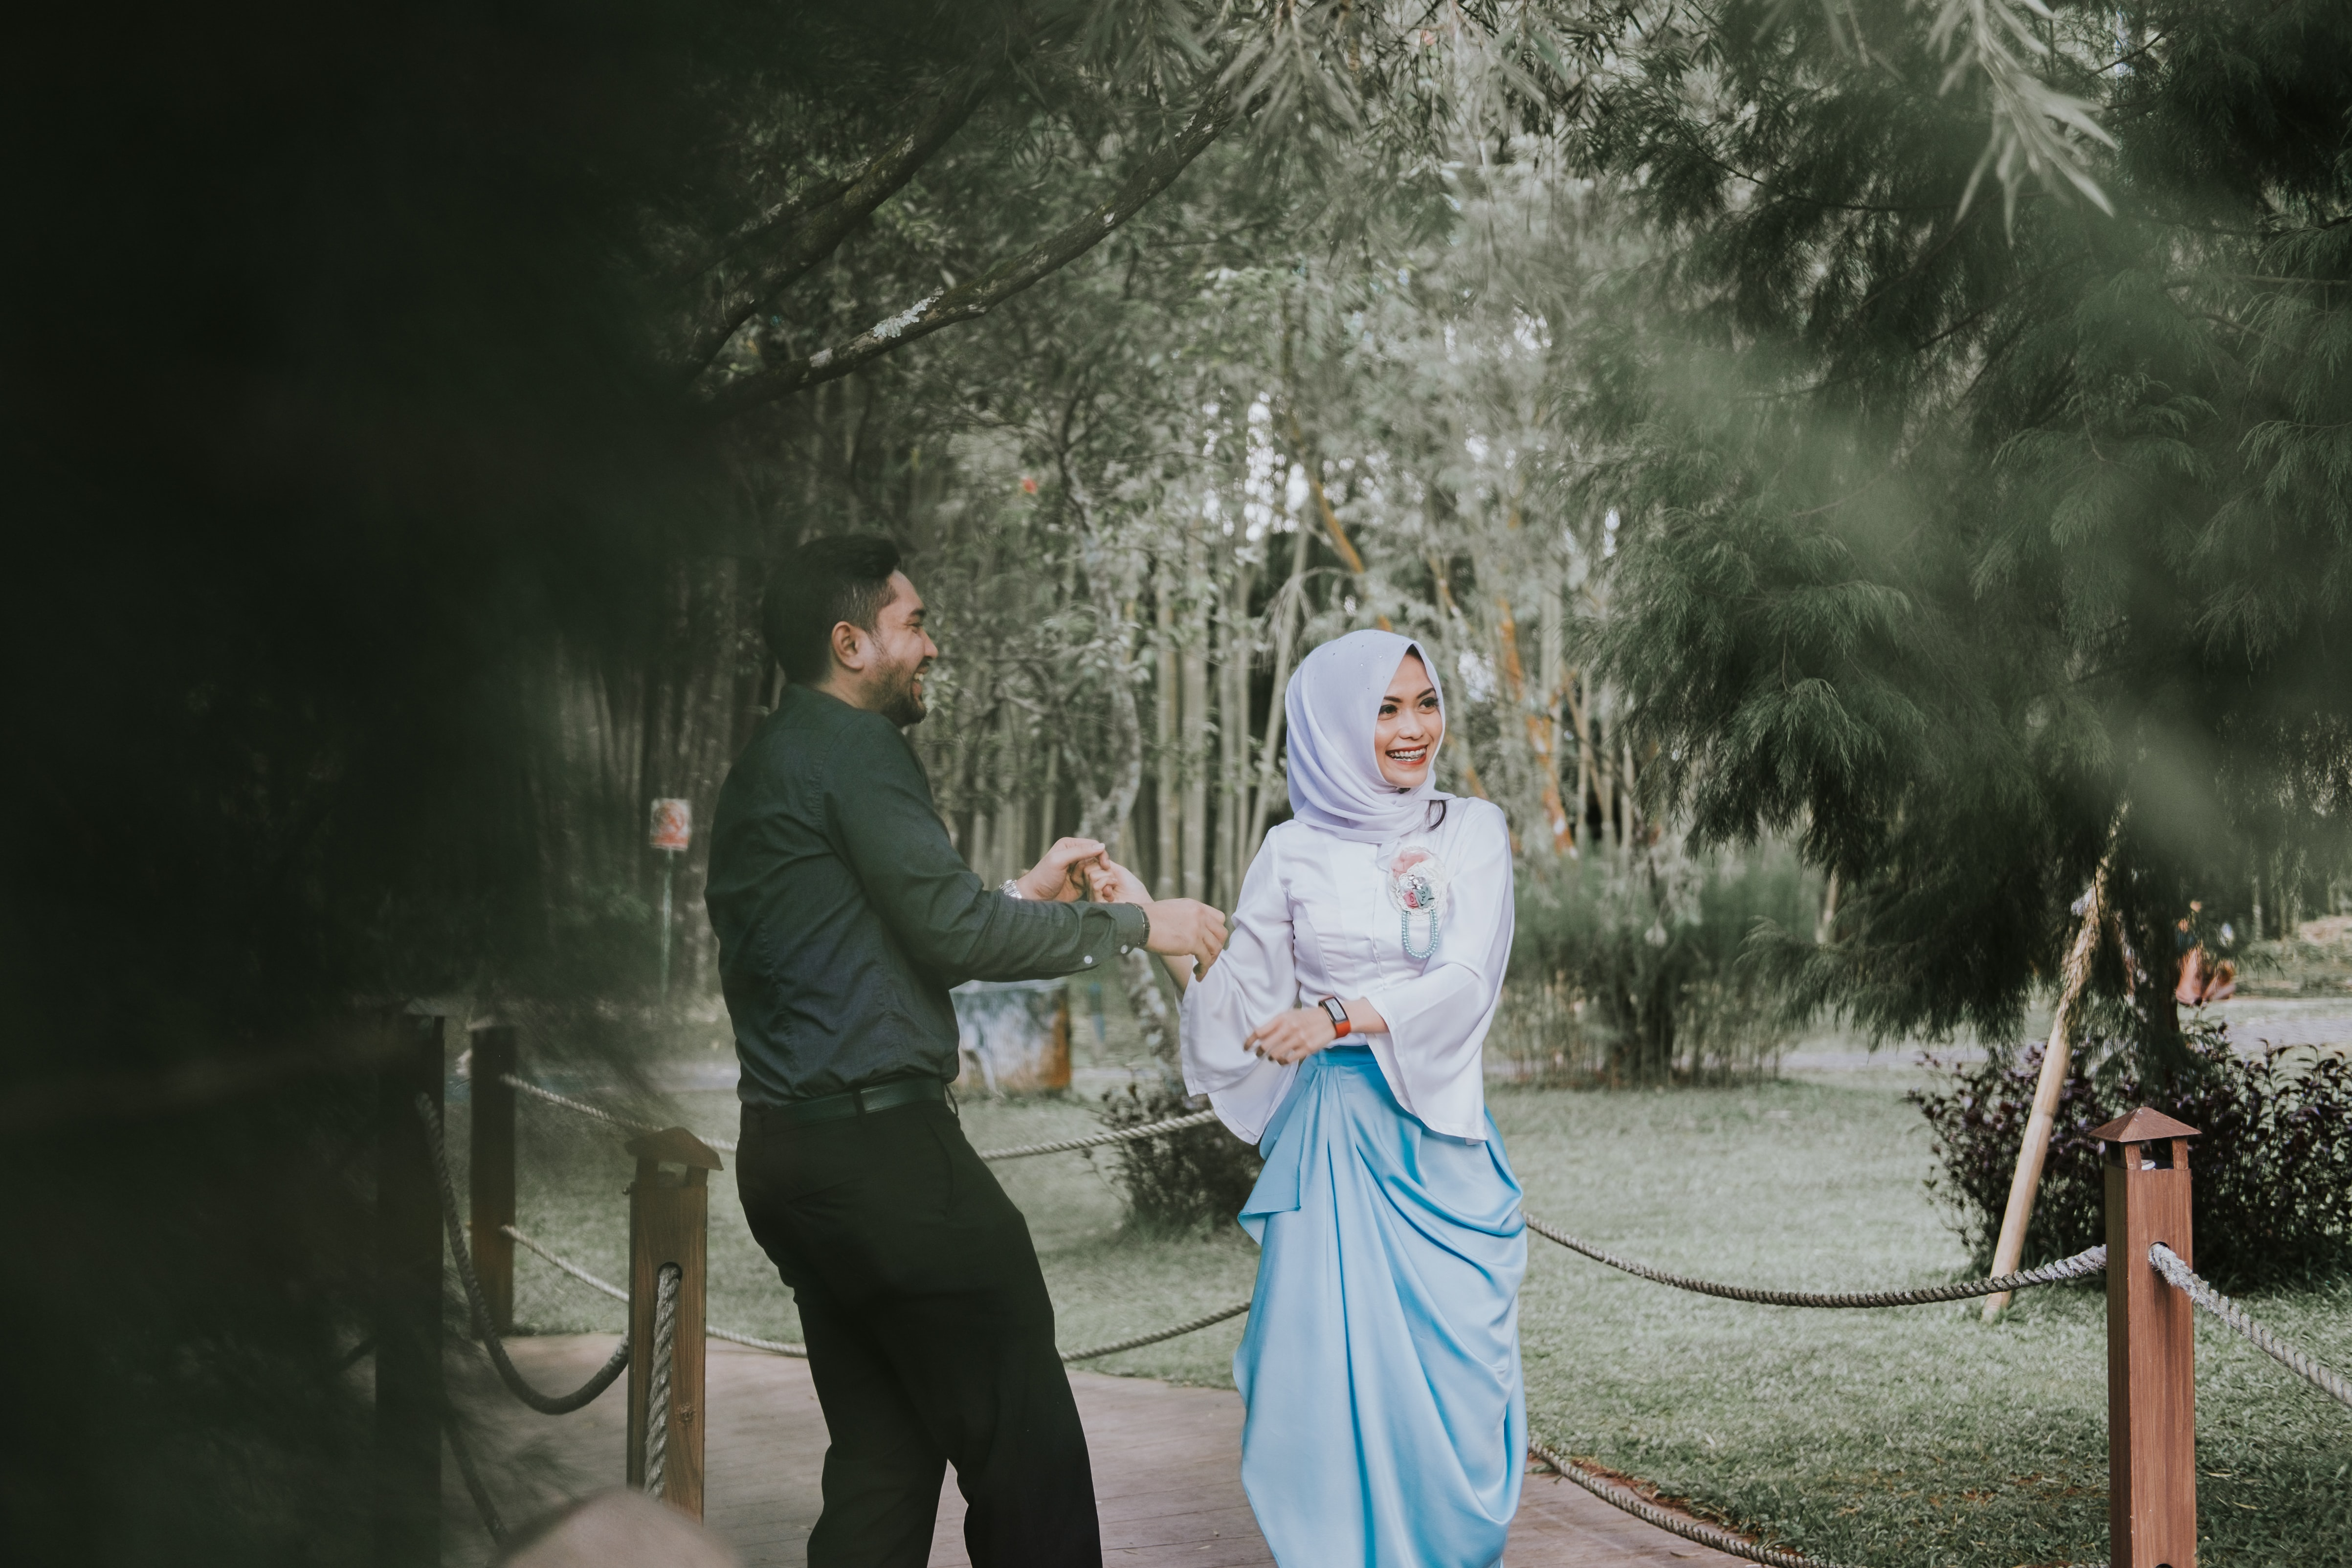 A man and woman in hijab dance on a path outside The Hill Hotel & Resort Sibolangit